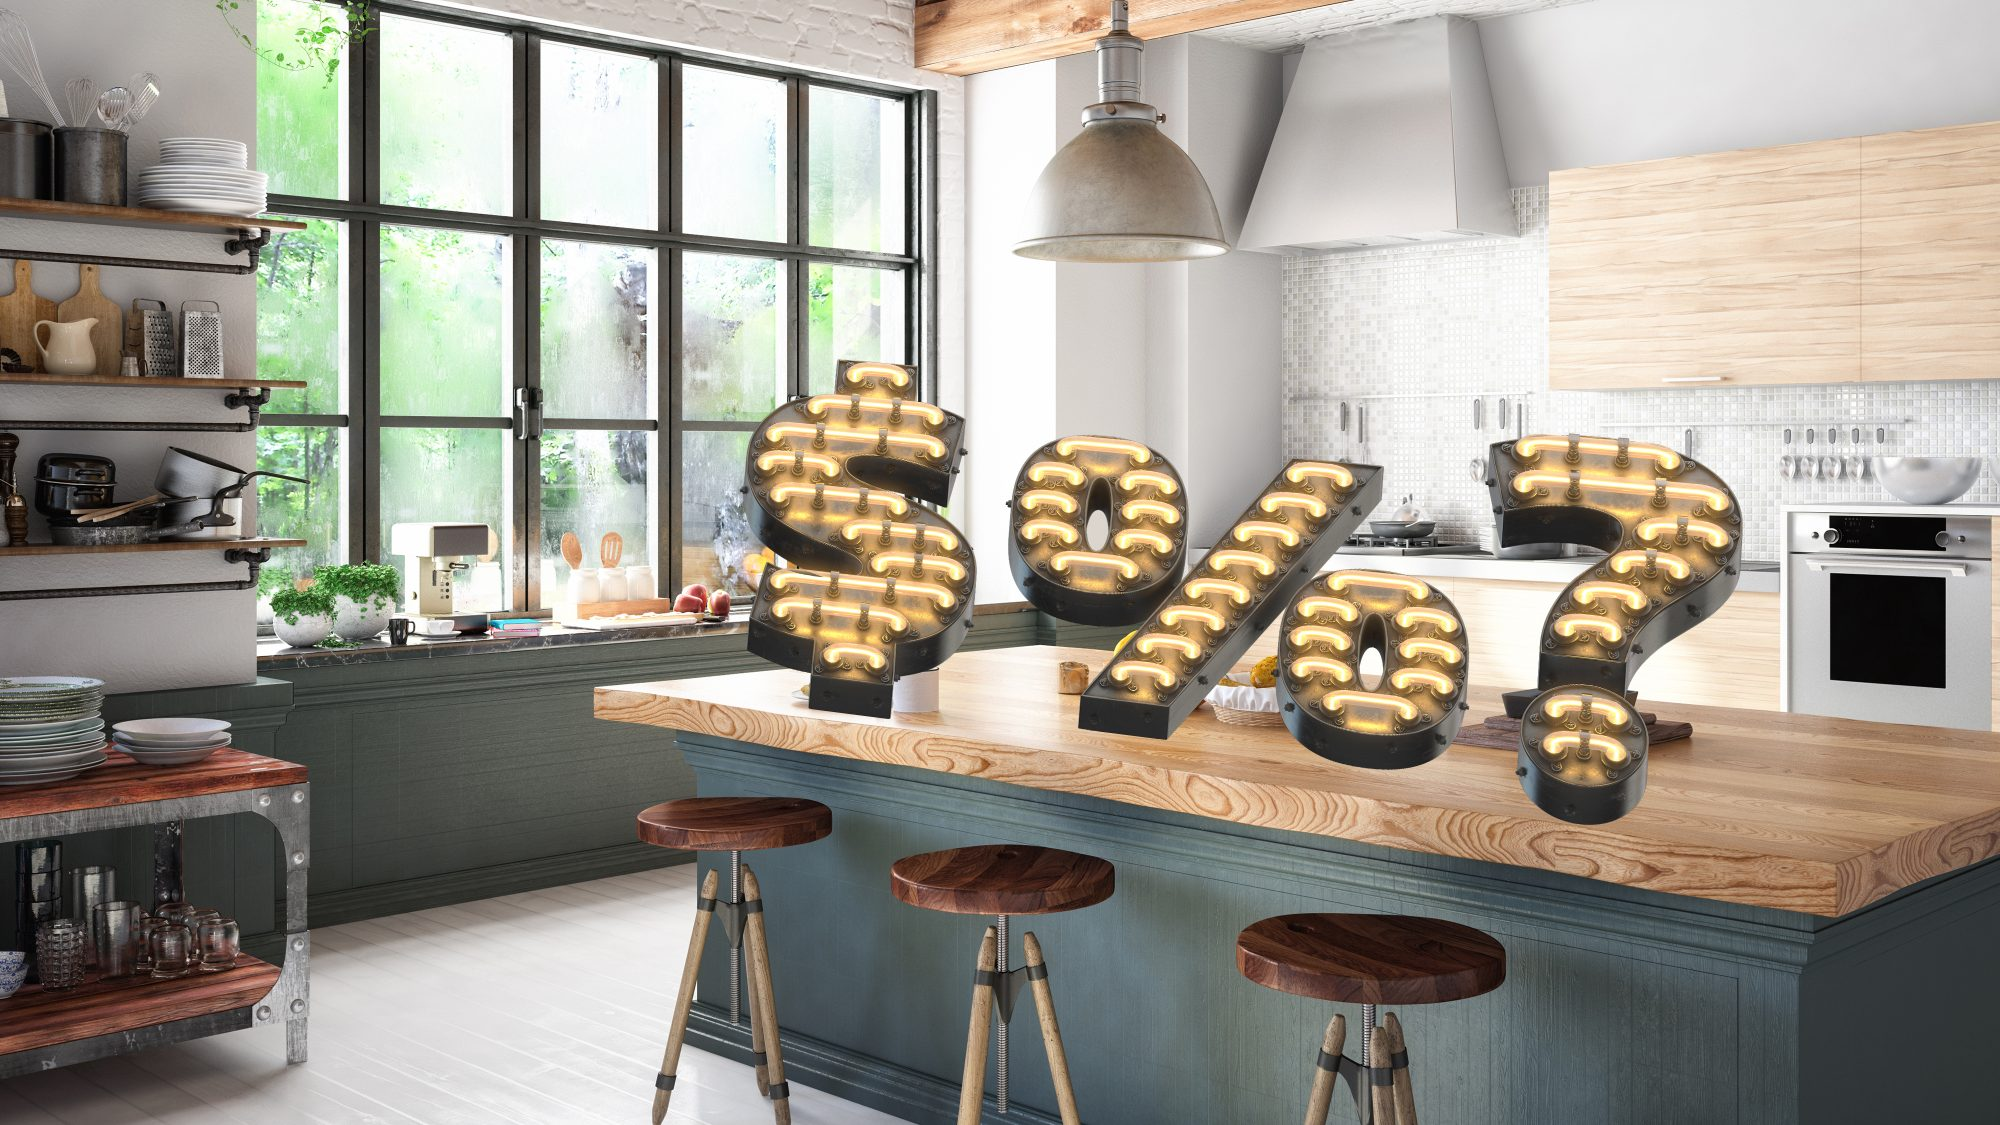 The #1 Rule for How Much to Spend on Your Kitchen Remodel